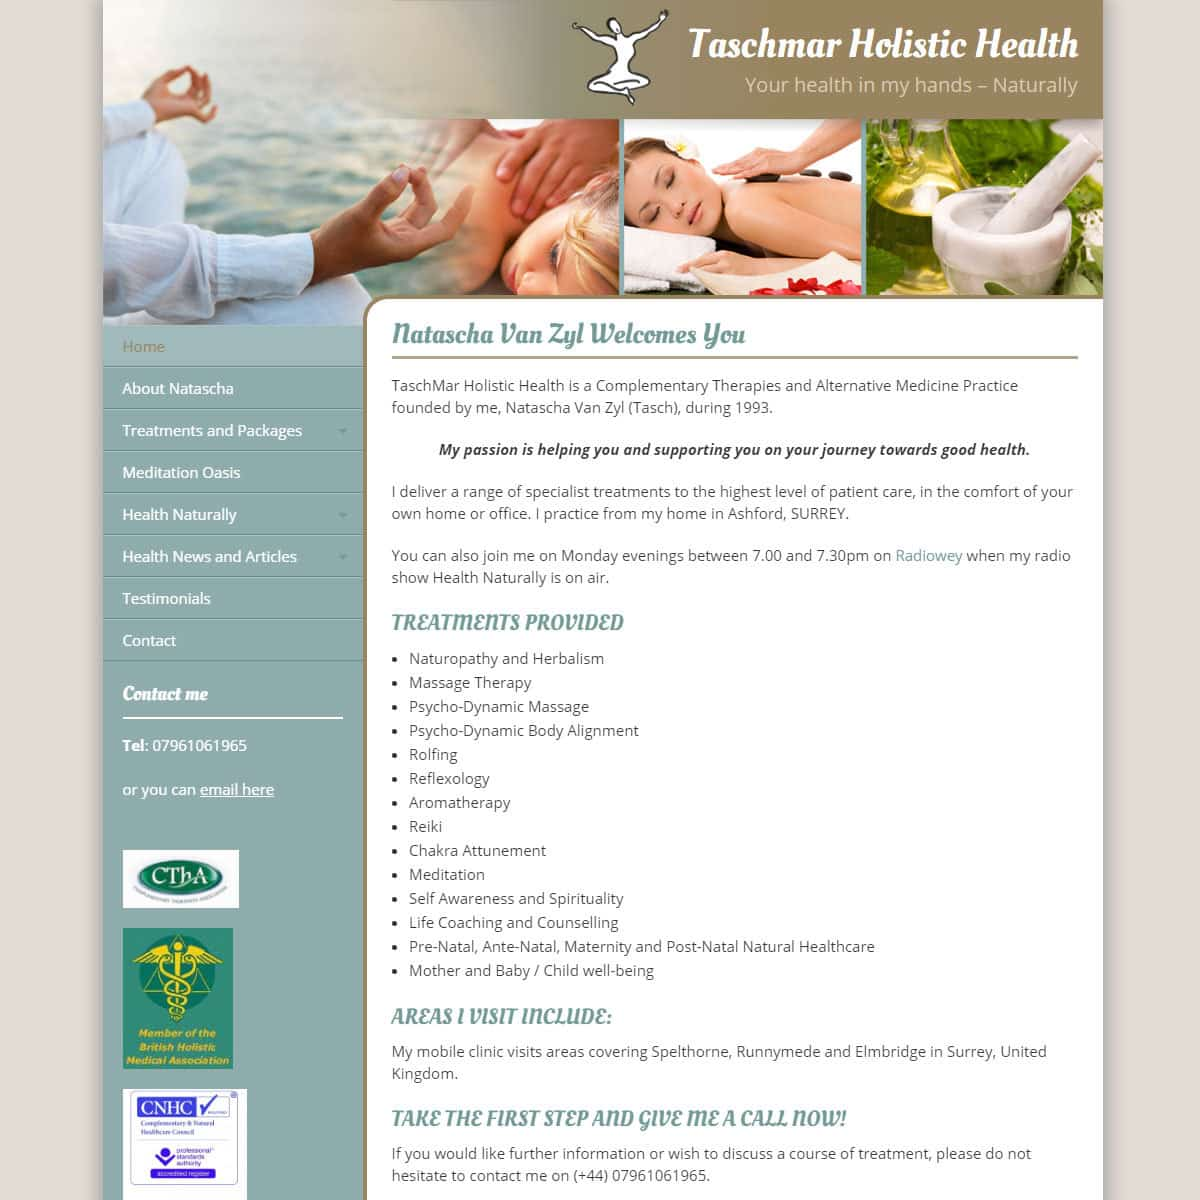 Taschmar Holistic Health - HealthHosts - Web Design for Therapists